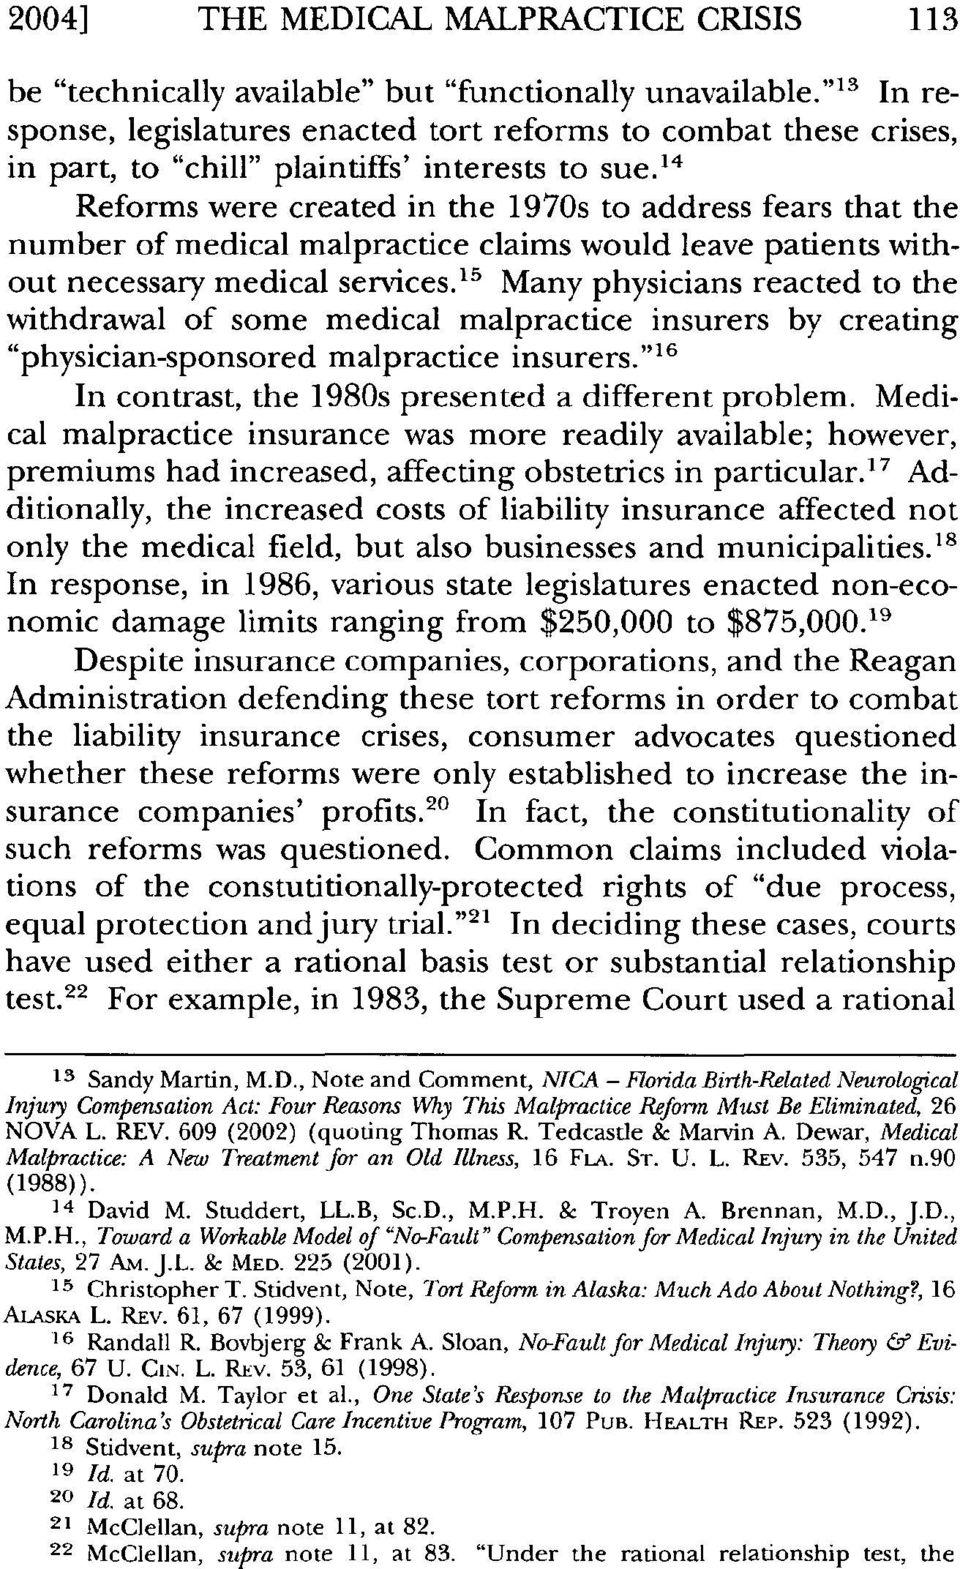 14 Reforms were created in the 1970s to address fears that the number of medical malpractice claims would leave patients without necessary medical services.